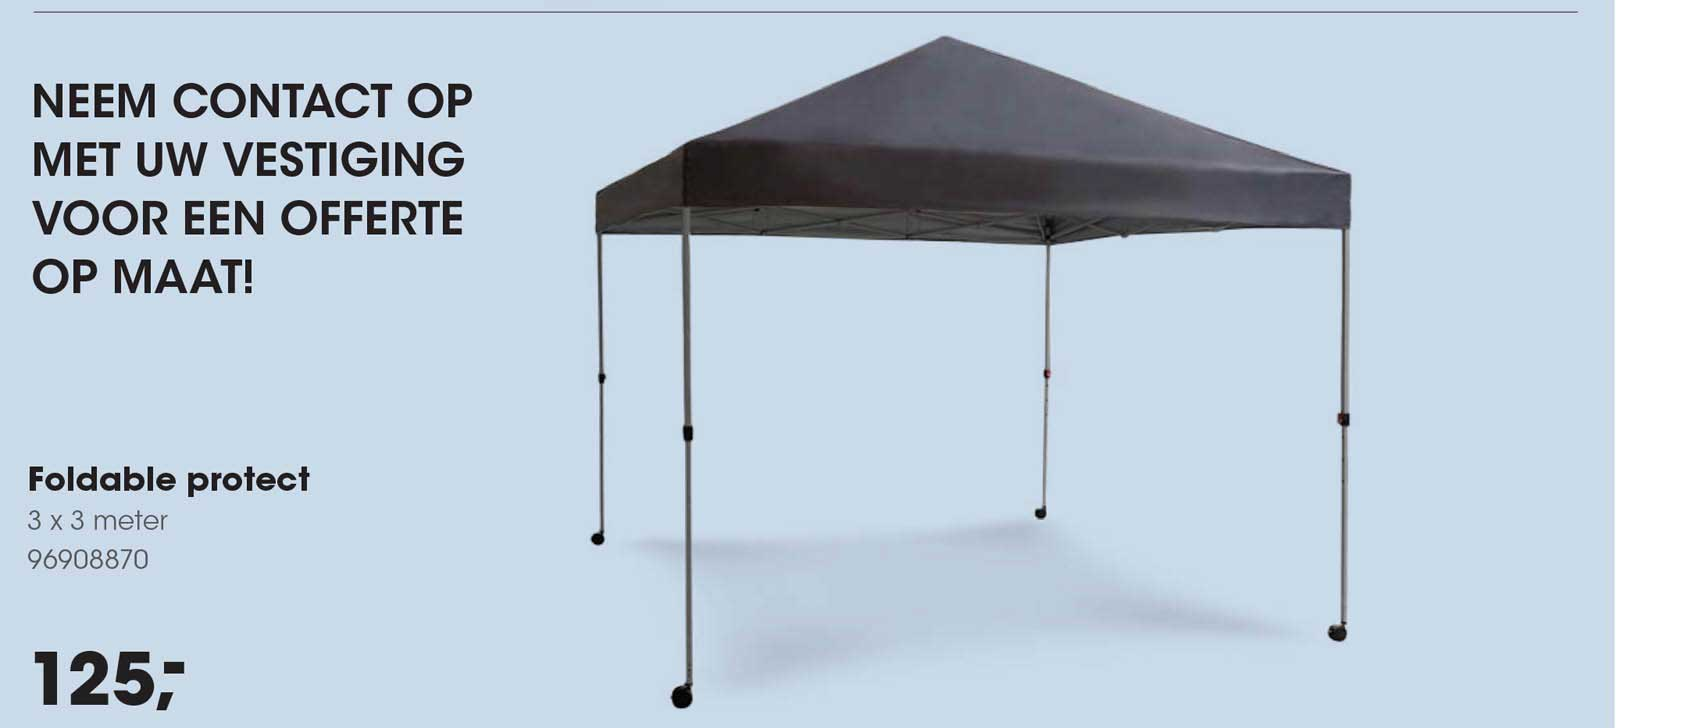 HANOS Foldable Protect 3 X 3 Meter